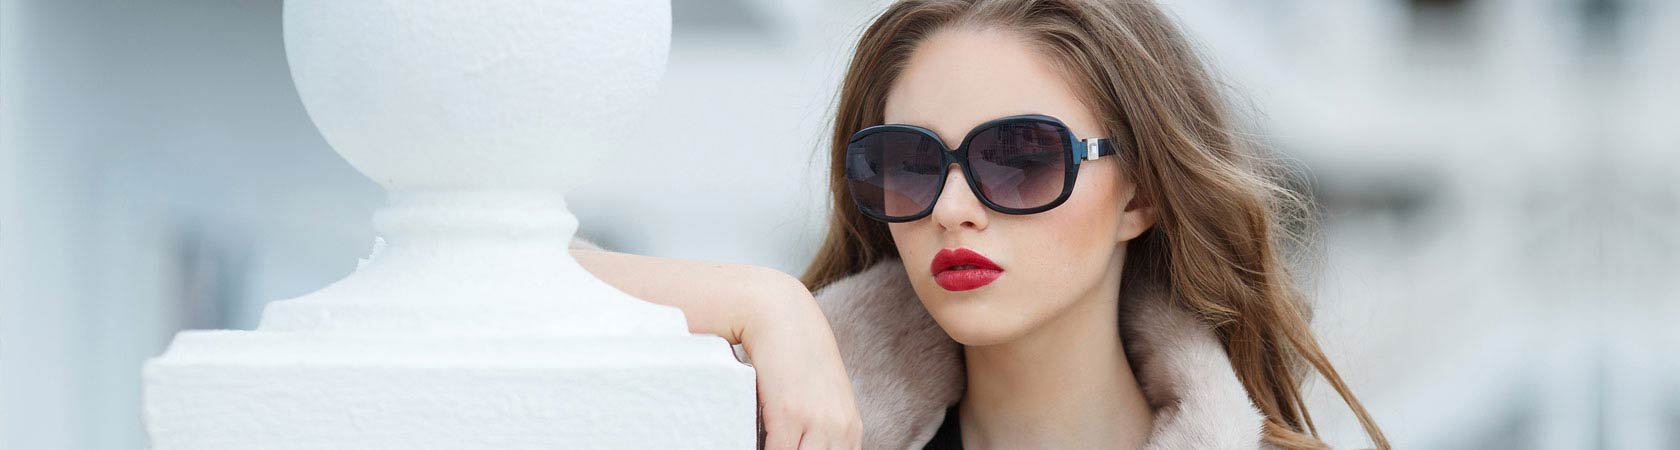 WOMENS FUR COATS IN PLUS SIZES FROM DIRECT FURRIER AT DISCOUNT PRICES